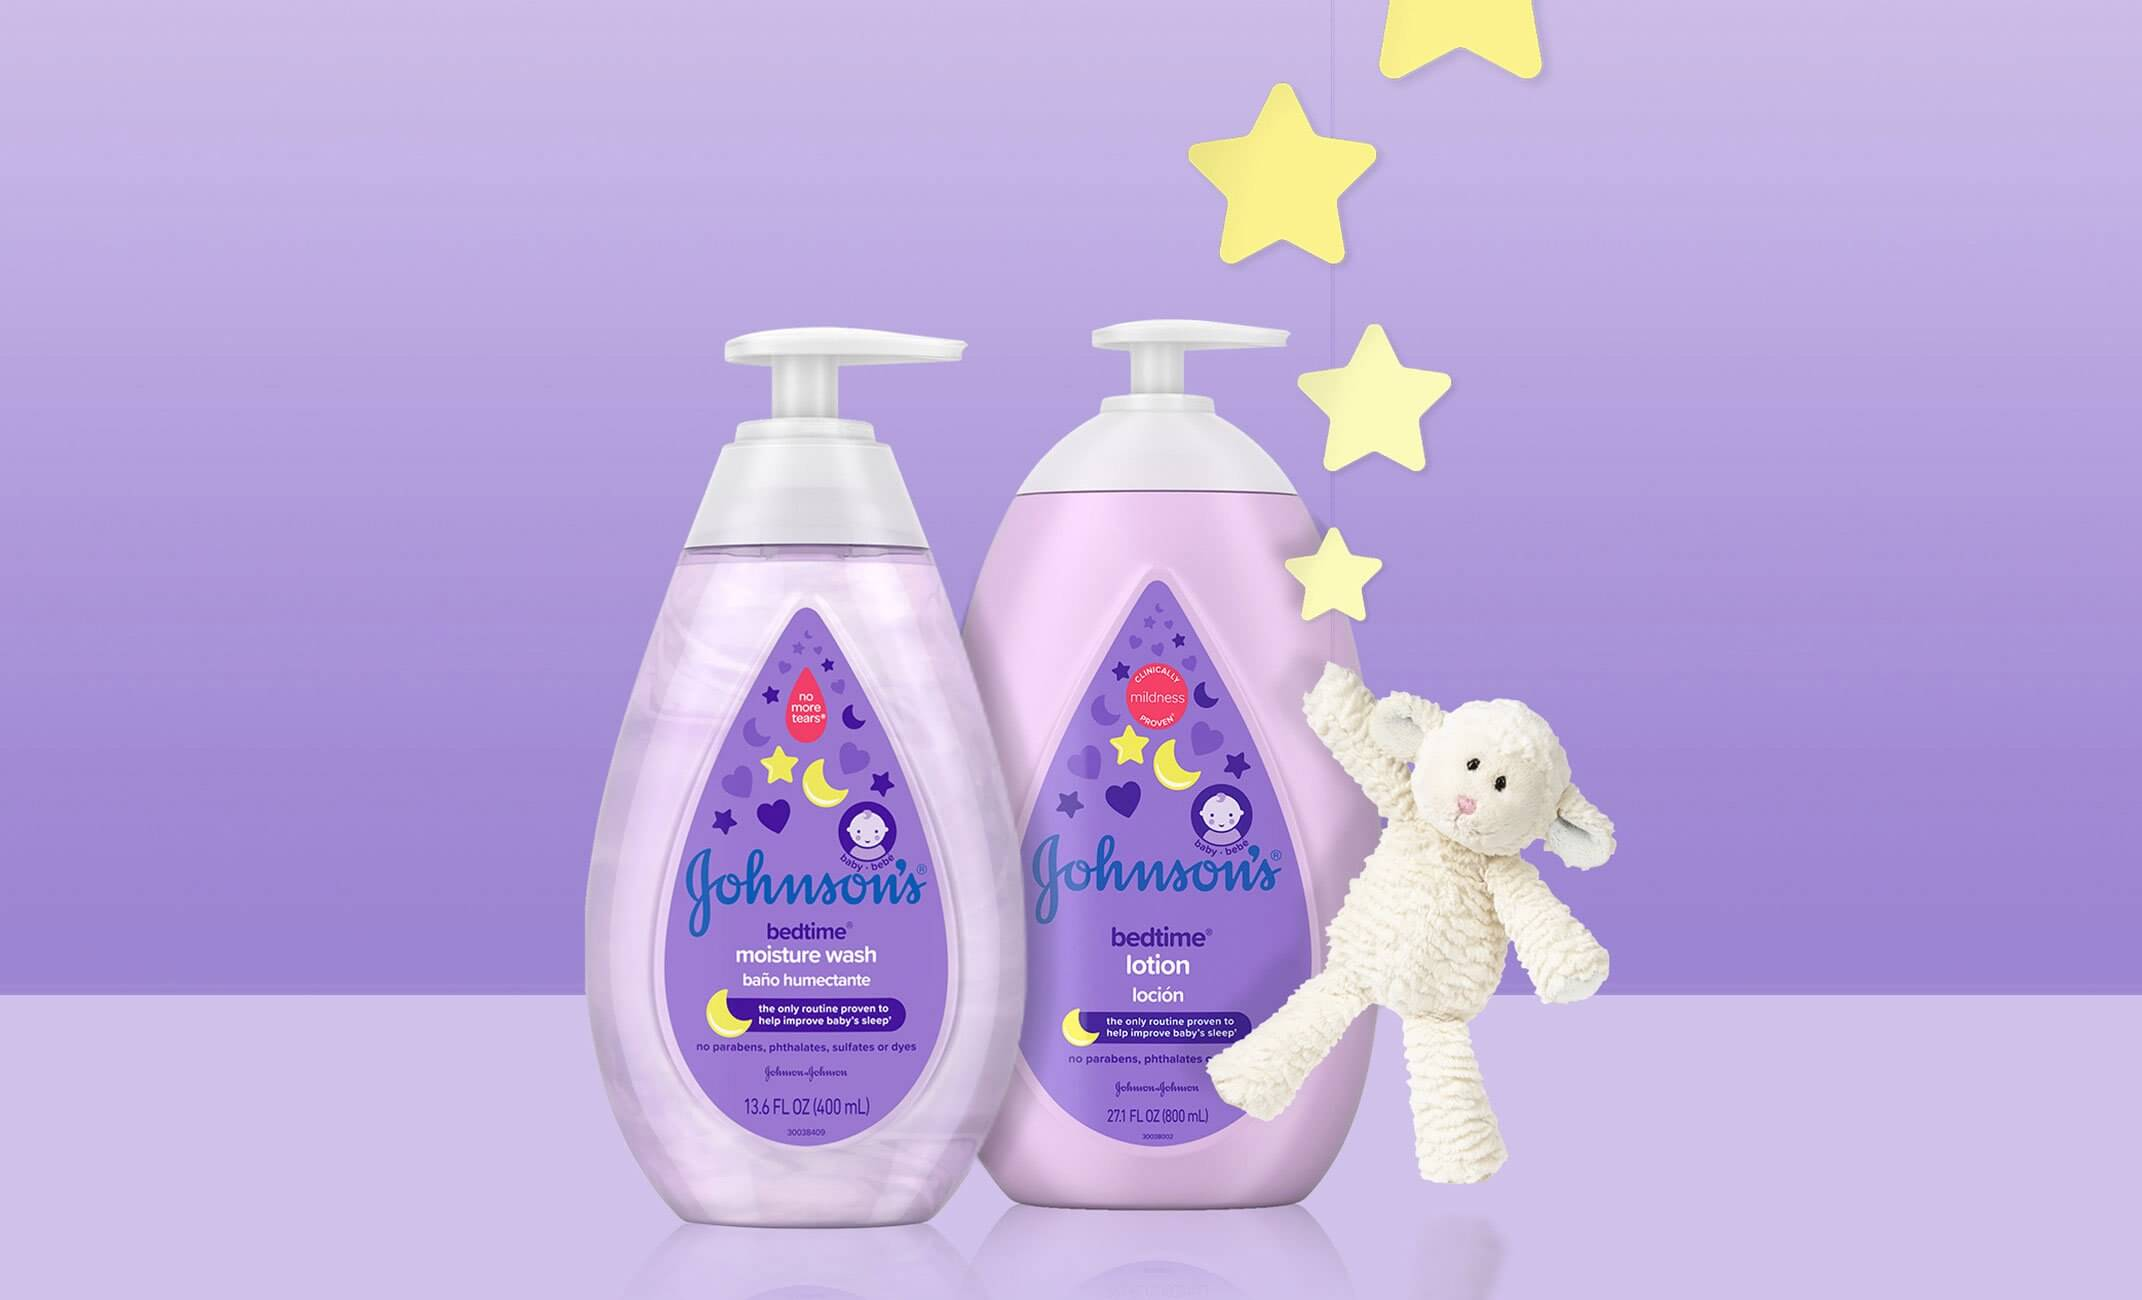 johnsons bedtime baby lotion moisture wash